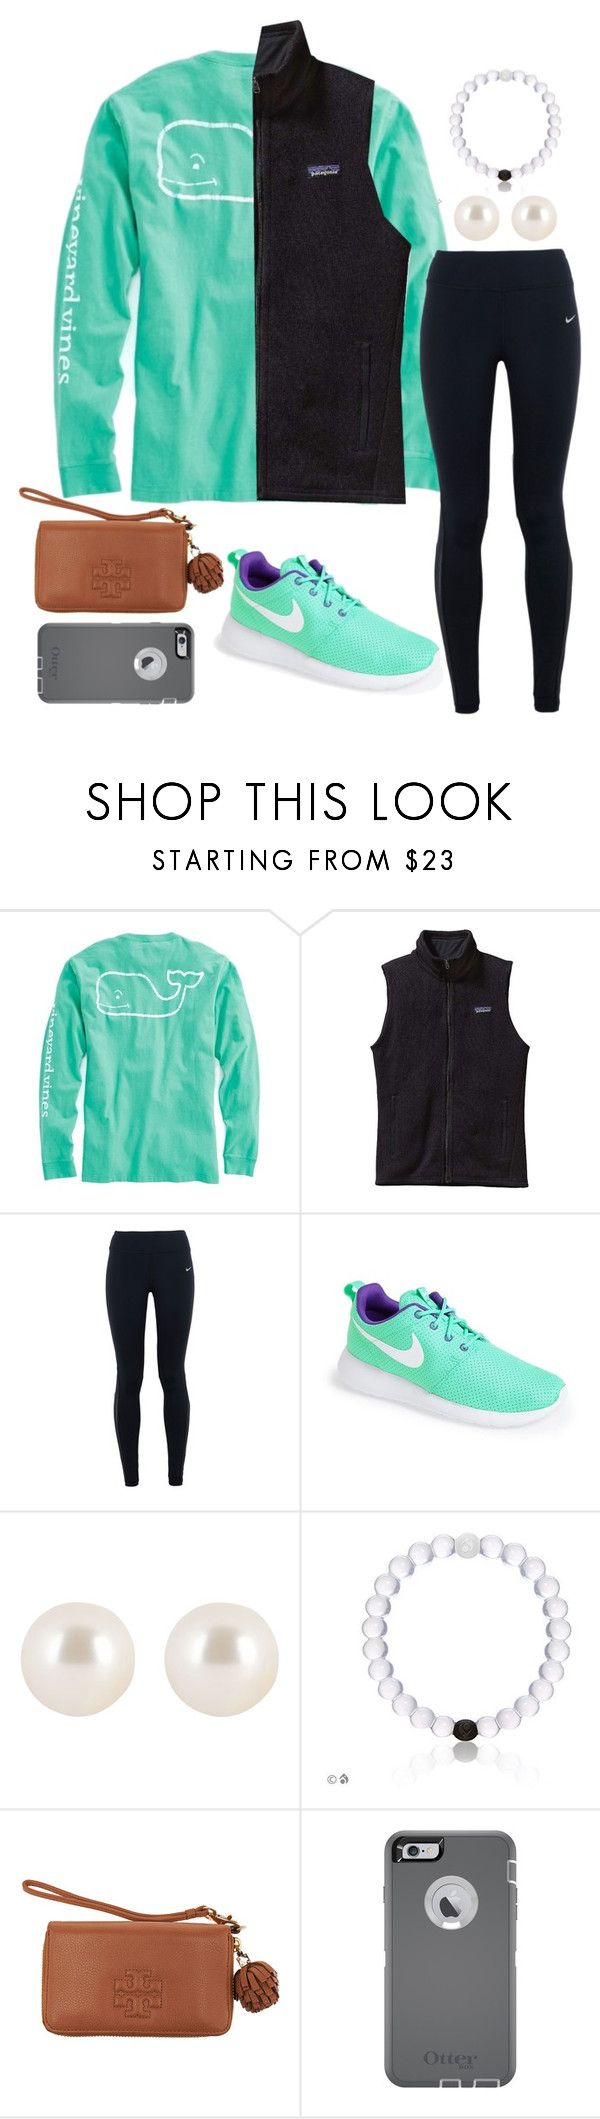 """hey everyone!! 